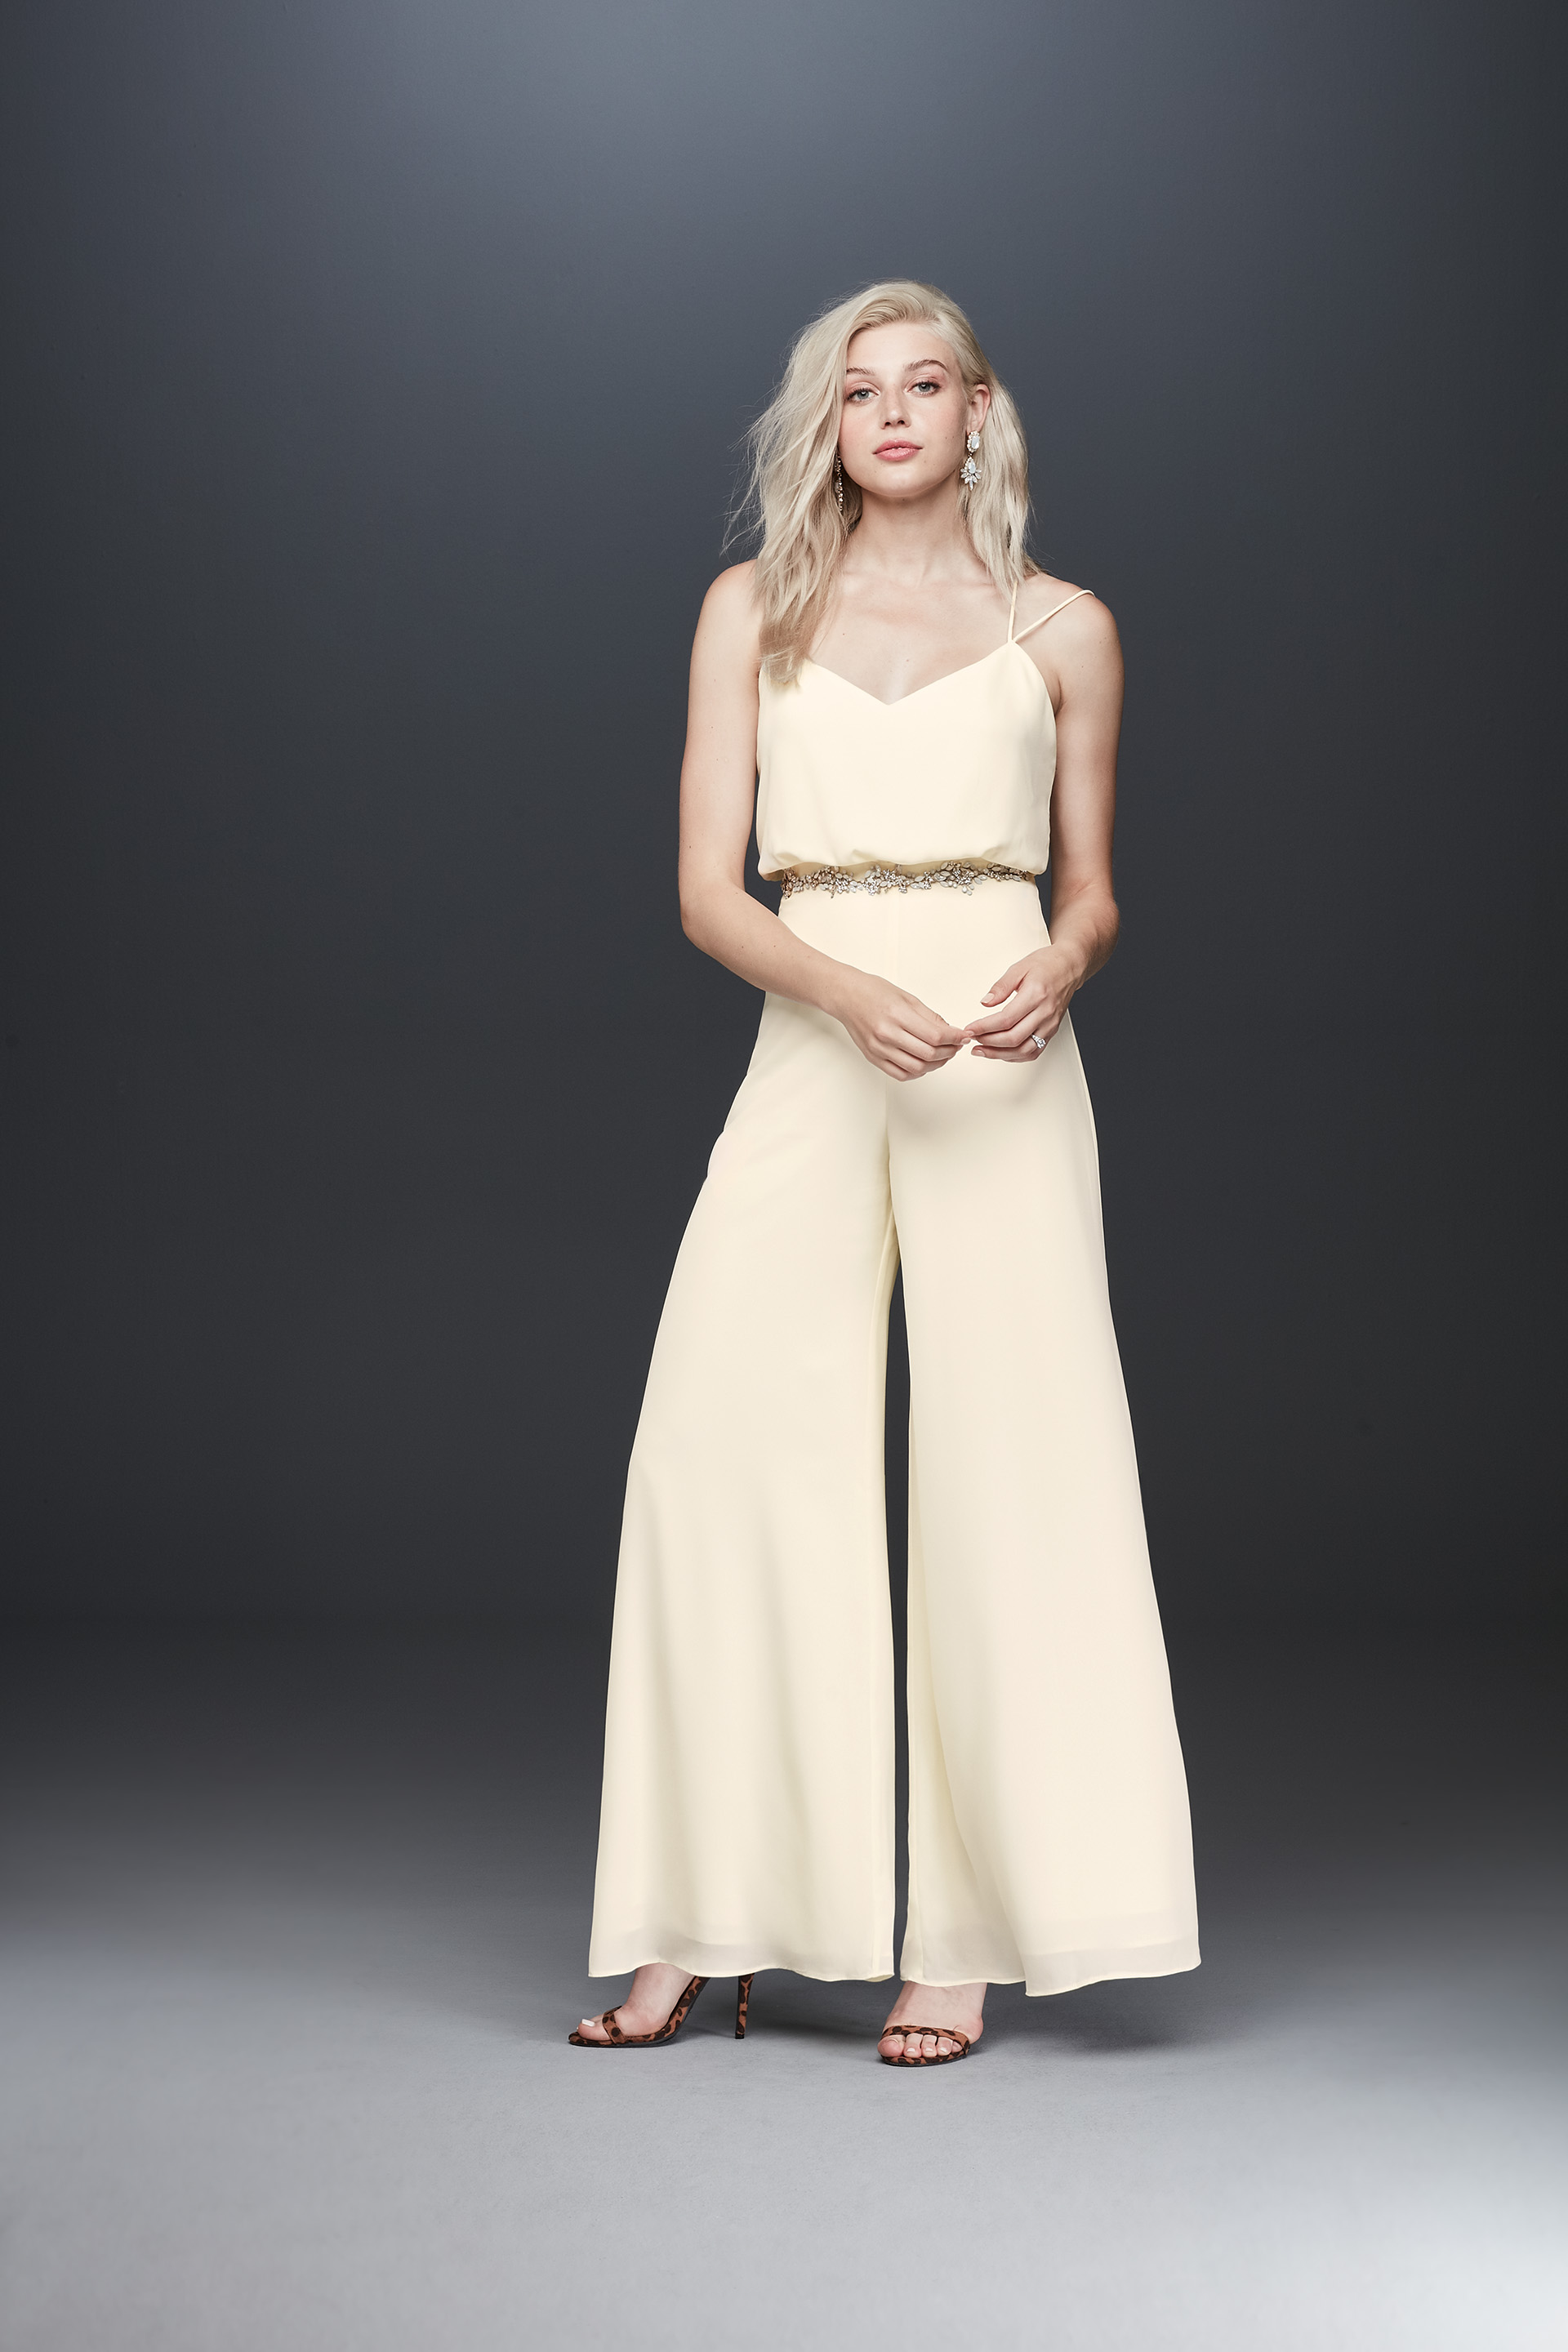 Bride in spaghetti strap bridal jumpsuit from Fame & Partners x David's Bridal collection